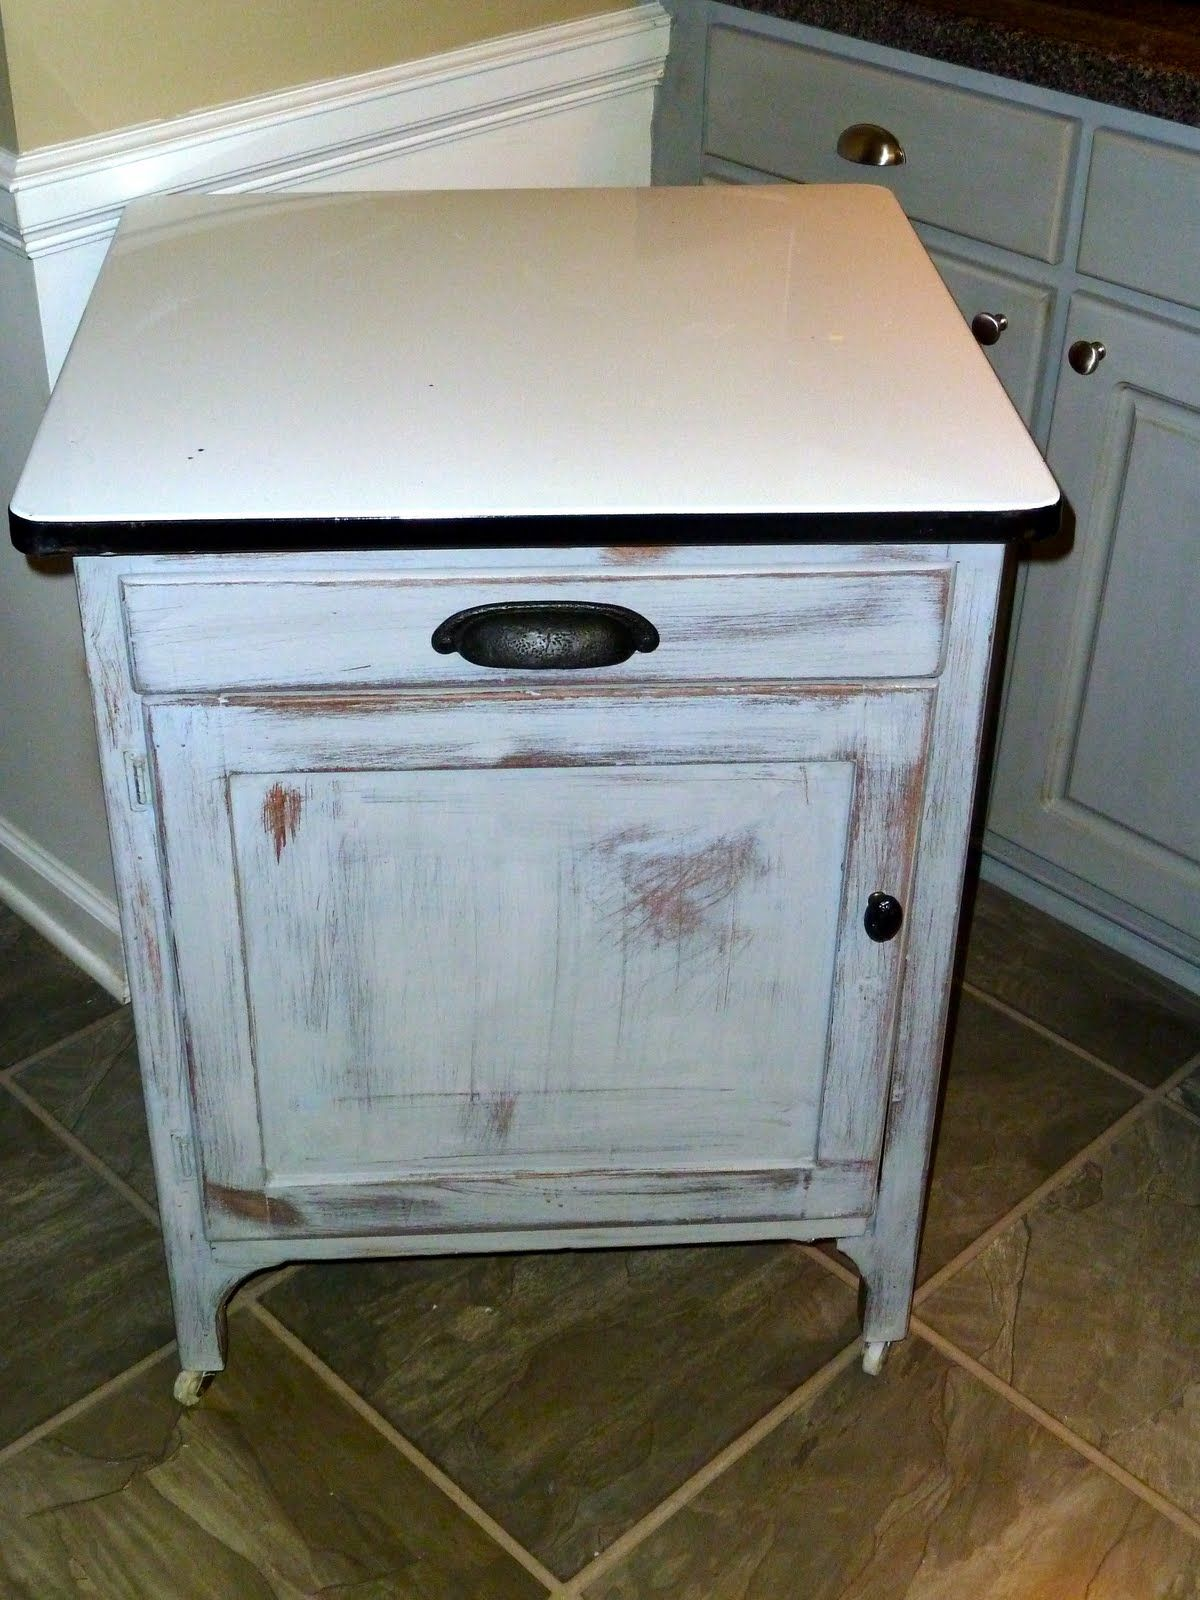 Painting Your Kitchen Cabinets Is No Small Undertaking: Annie Sloan Paris Grey Kitchen Cabinets Distressed